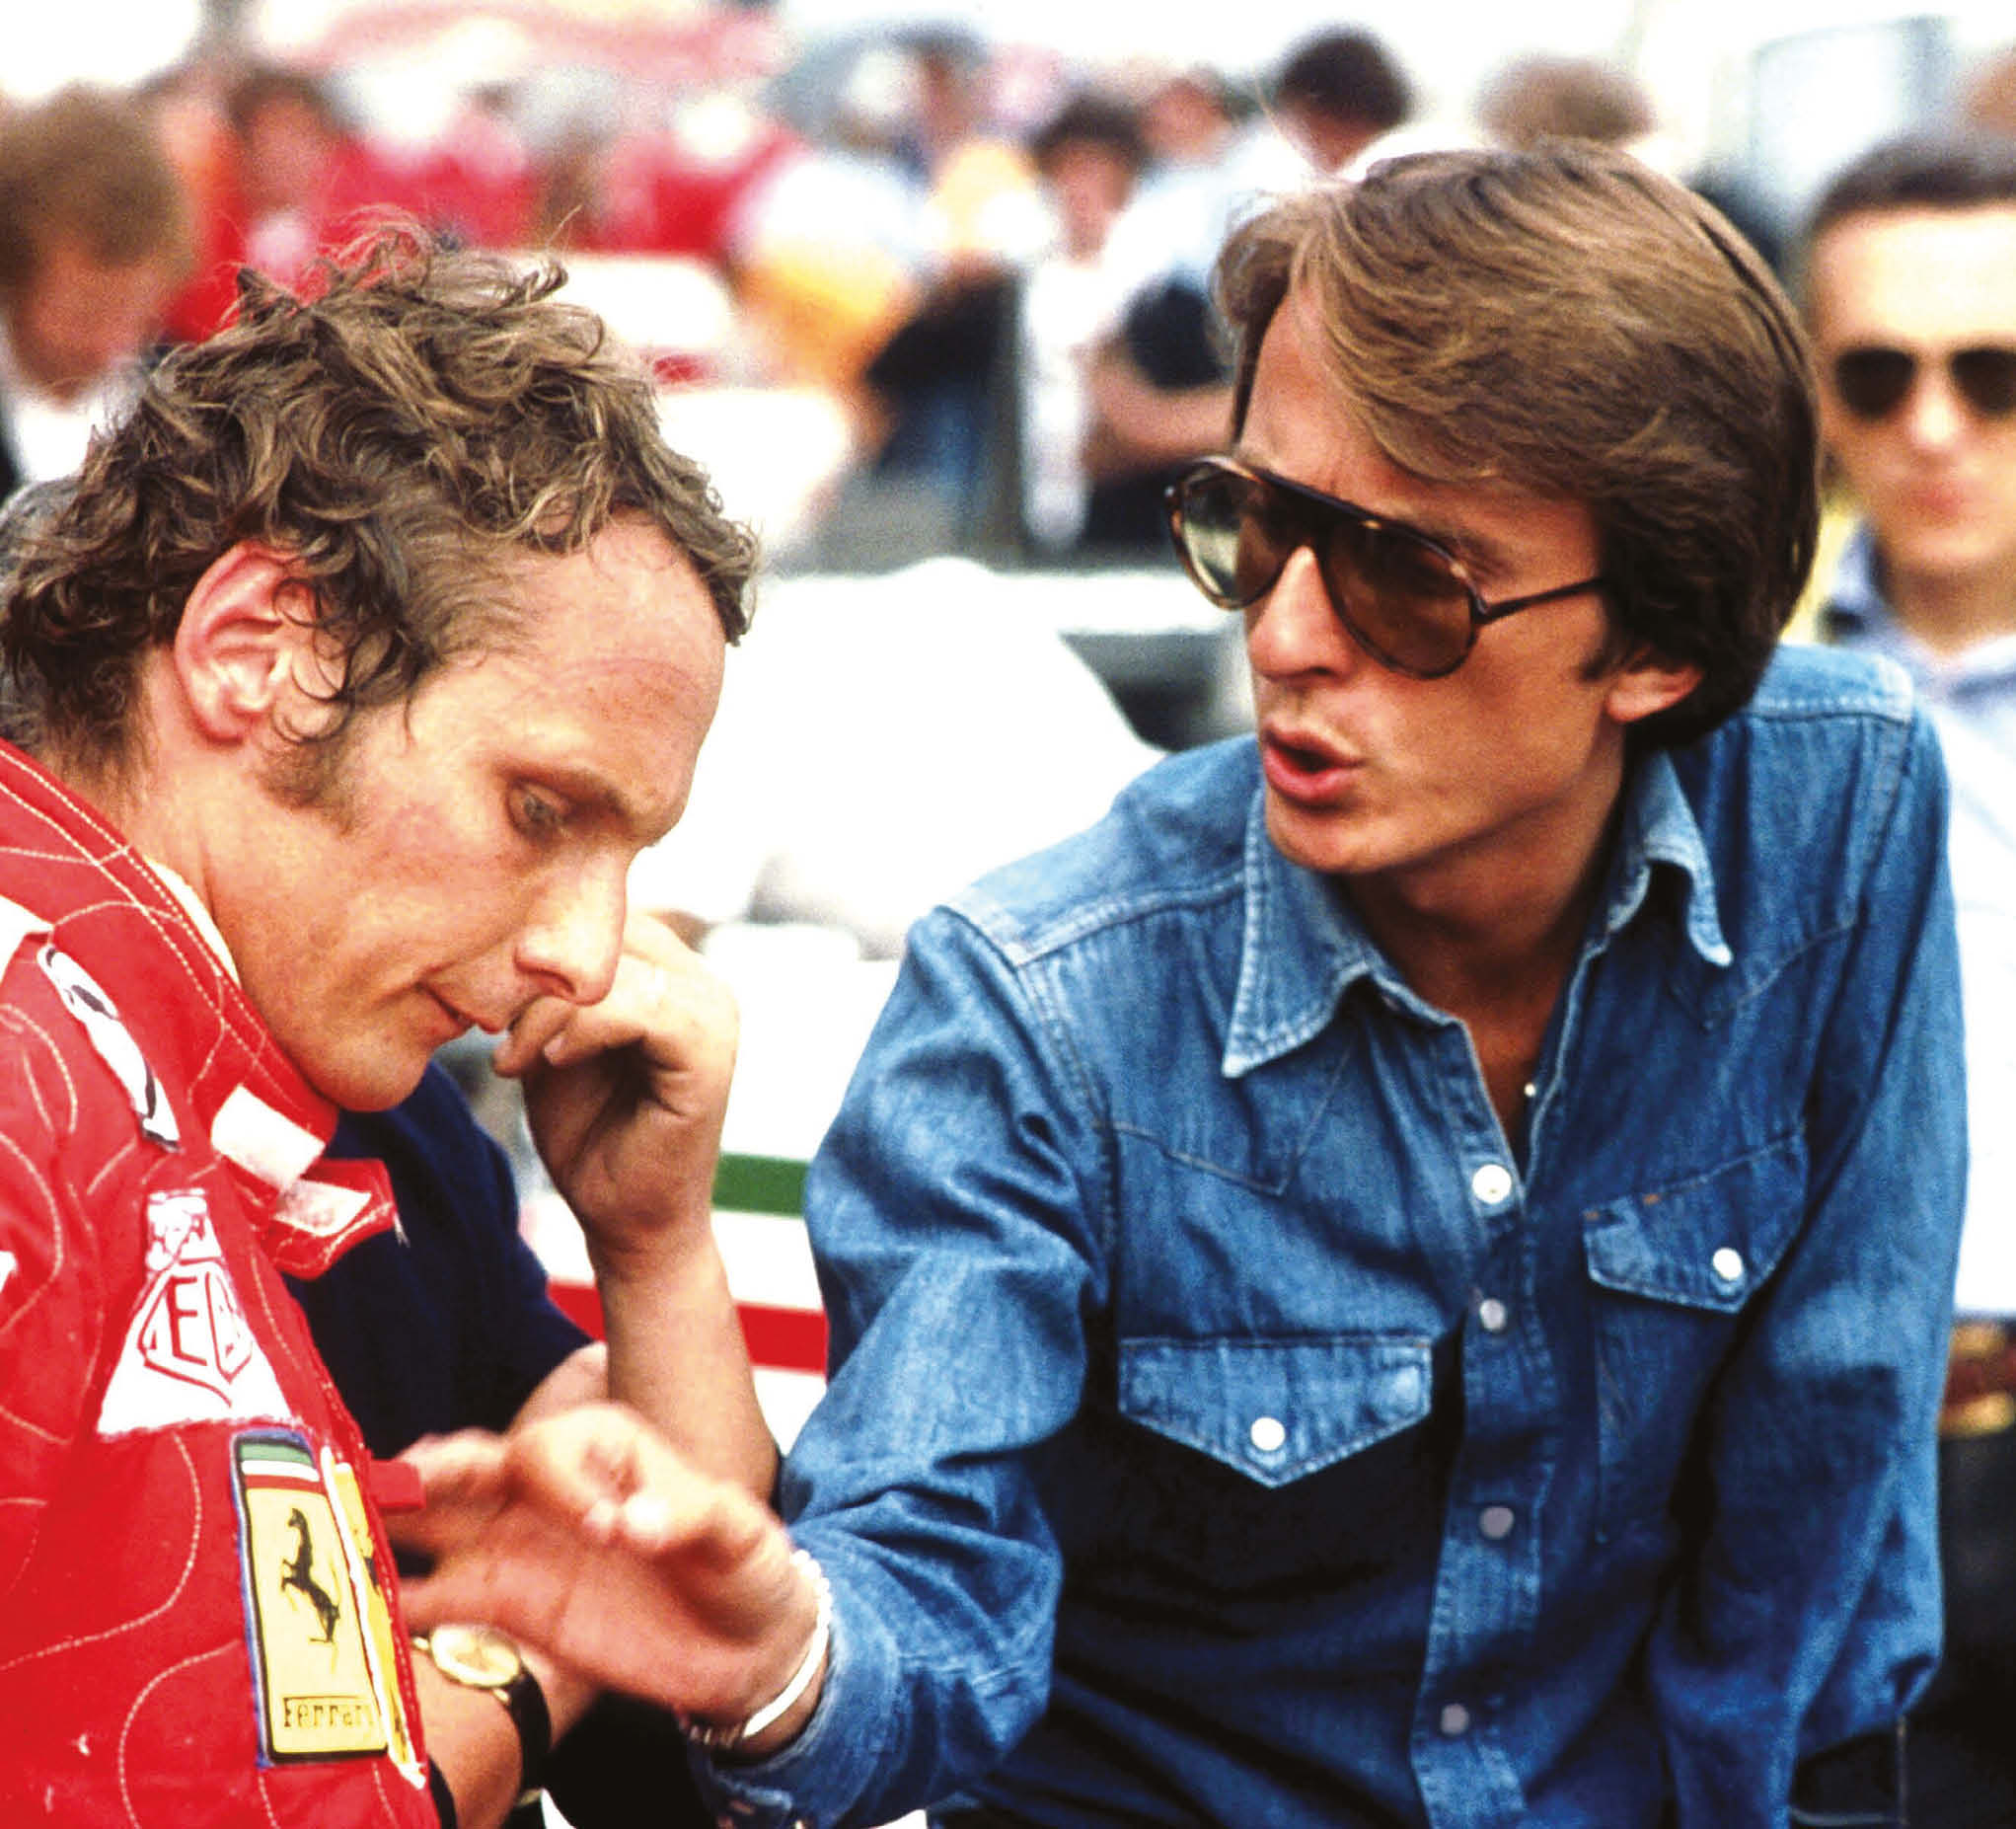 Luca di Montezemolo's first success was as team manager with Niki Lauda back in 1975